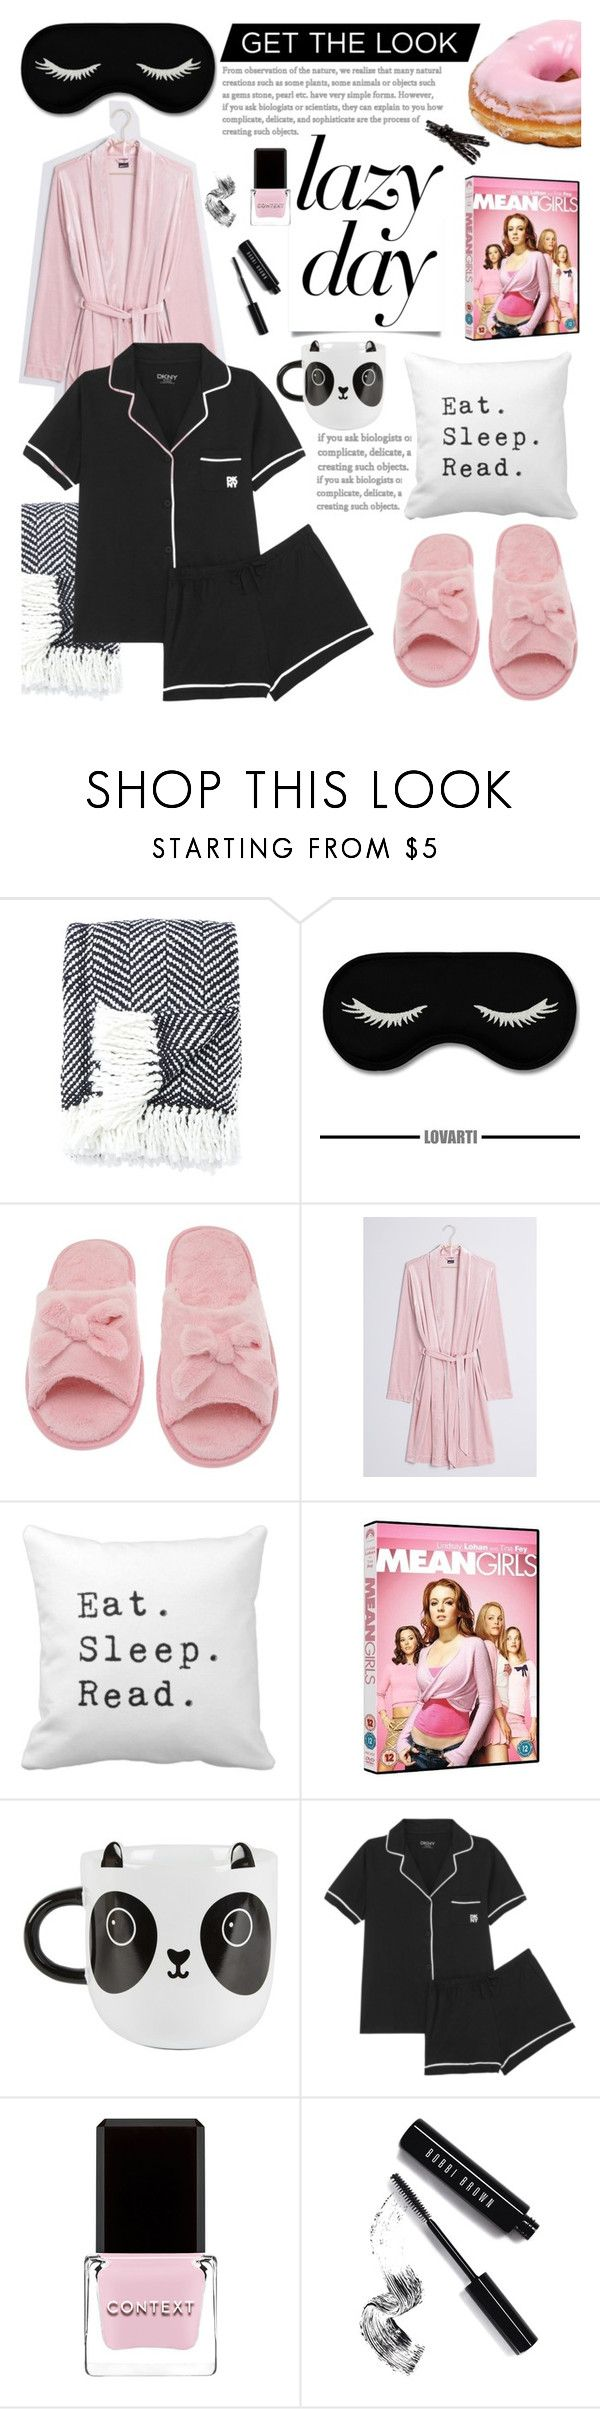 """Sleep In: Lazy Day"" by glamorous09 ❤ liked on Polyvore featuring Kate Spade, Deluxe Comfort, Sass & Belle, DKNY, Context, Bobbi Brown Cosmetics and LazyDay"